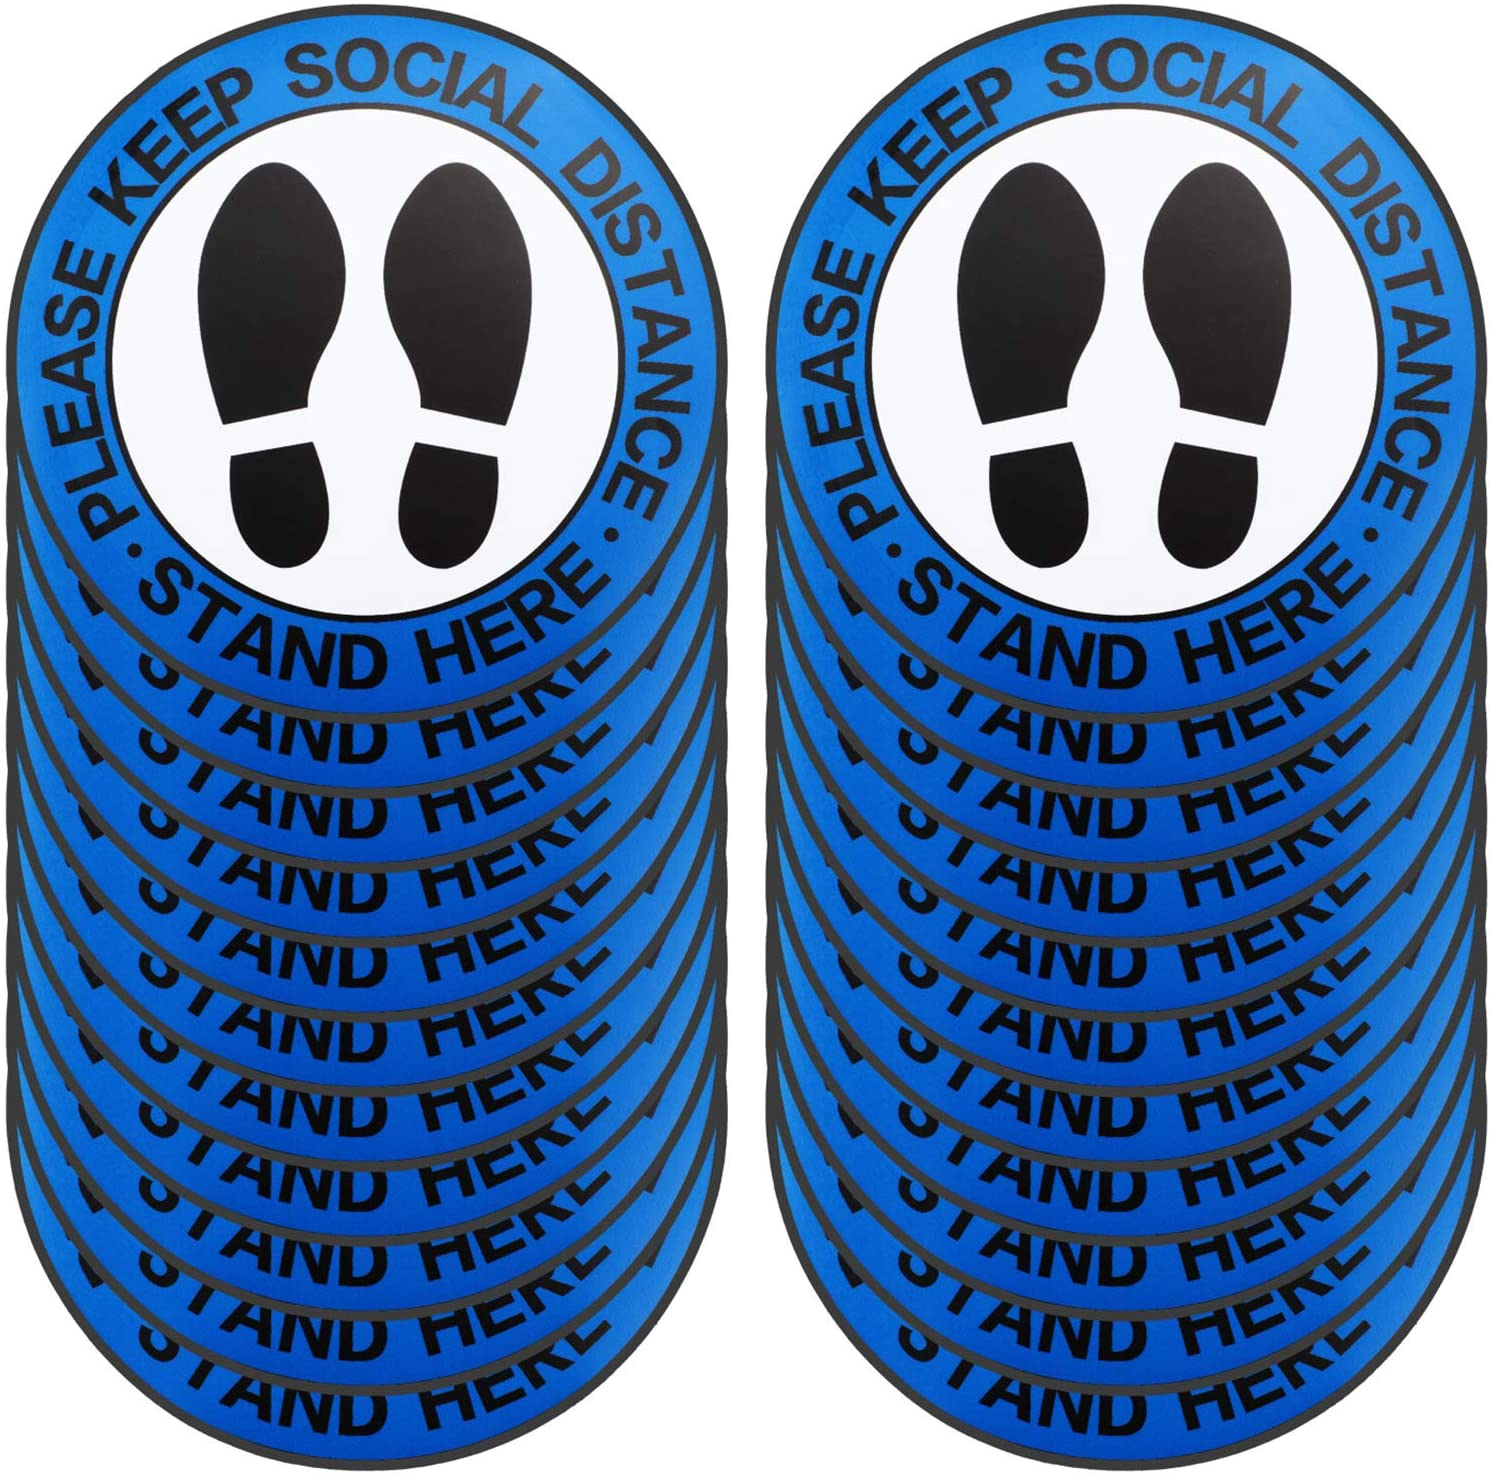 30 Pieces 8 Inch Social Distance Floor Decals 6 Feet Apart Sticker Round Vinyl Removable Anti-Slip Textured Floor Safety Stickers Signs Please Keep Social Distance, Peel and Stick Adhesive (Blue)